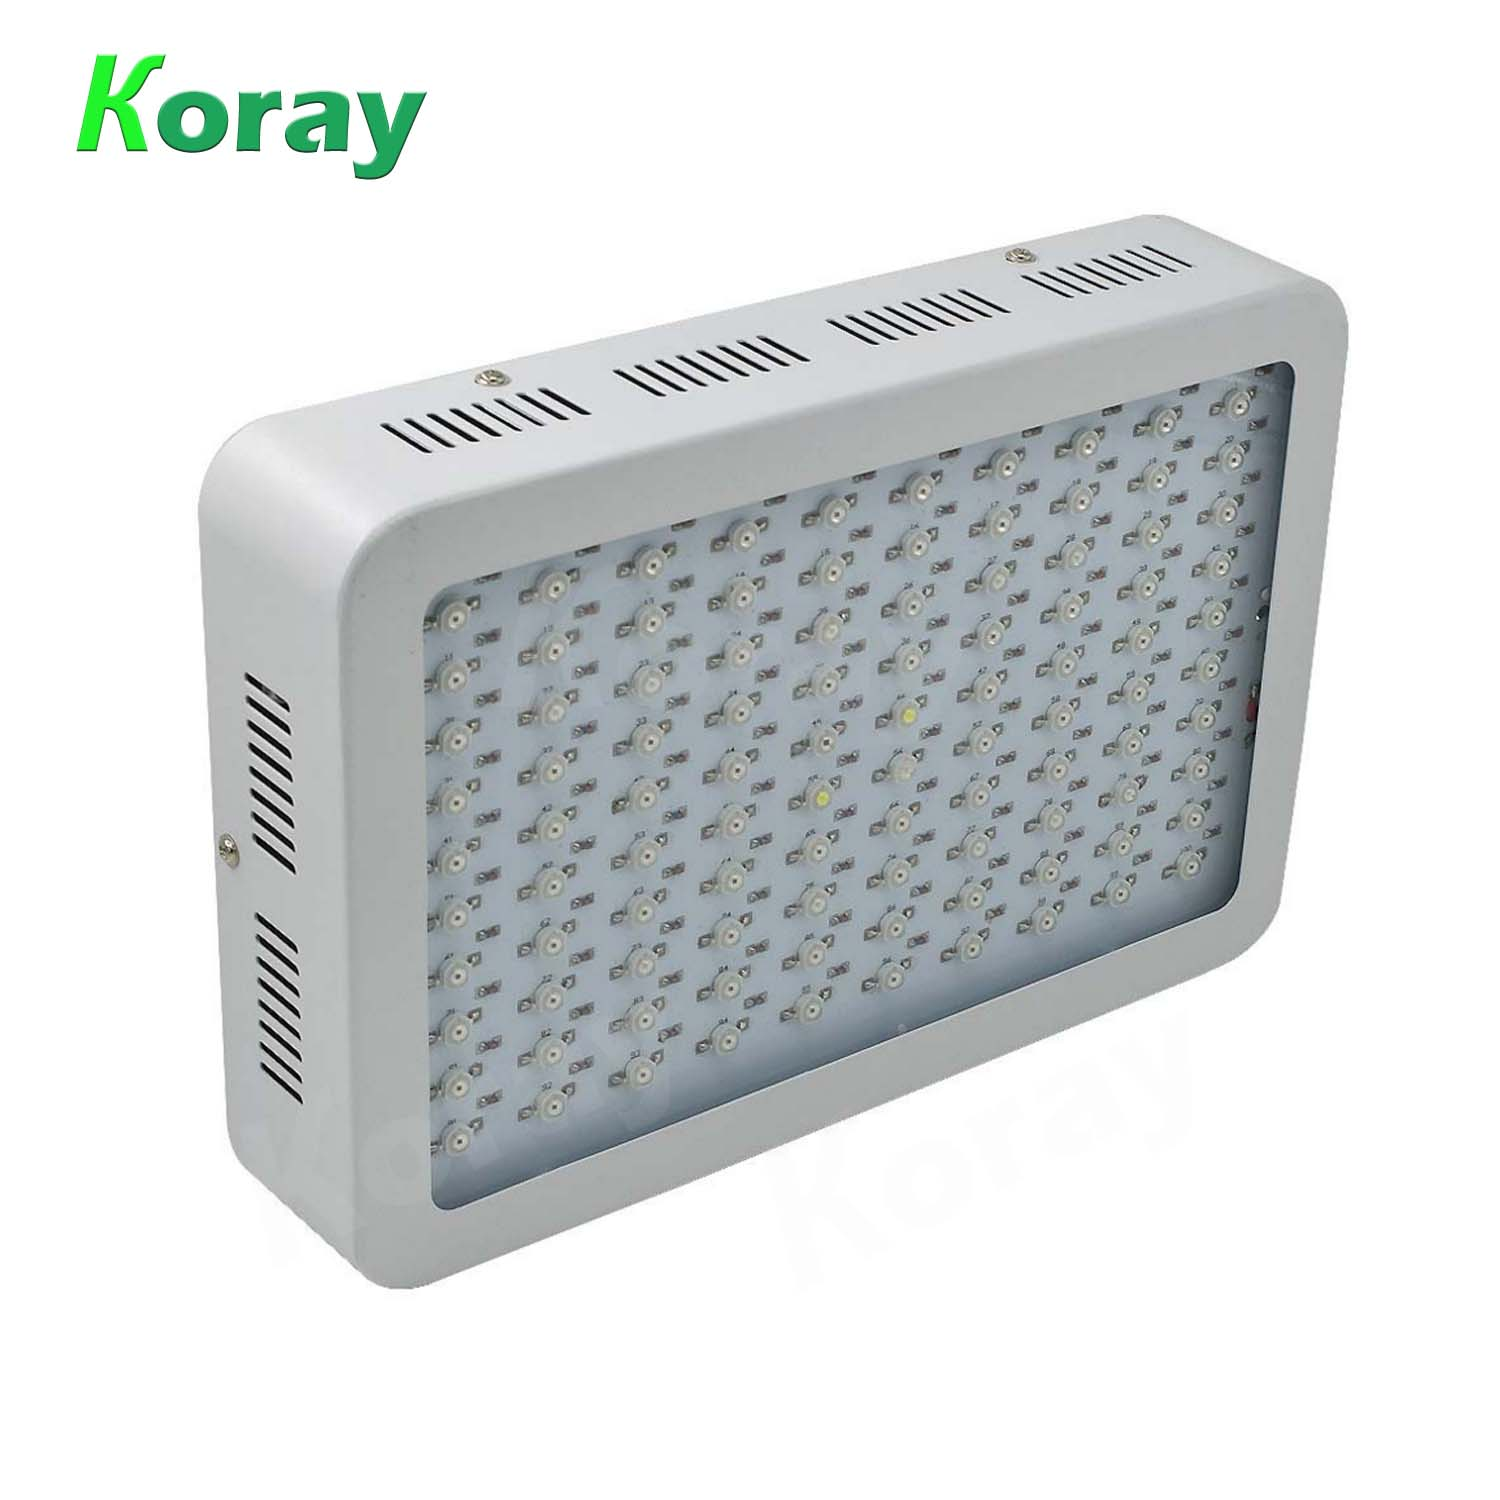 Fast Growing Agricultural Products 1000W Super umol LED Lights Hydroponic Growing Systems